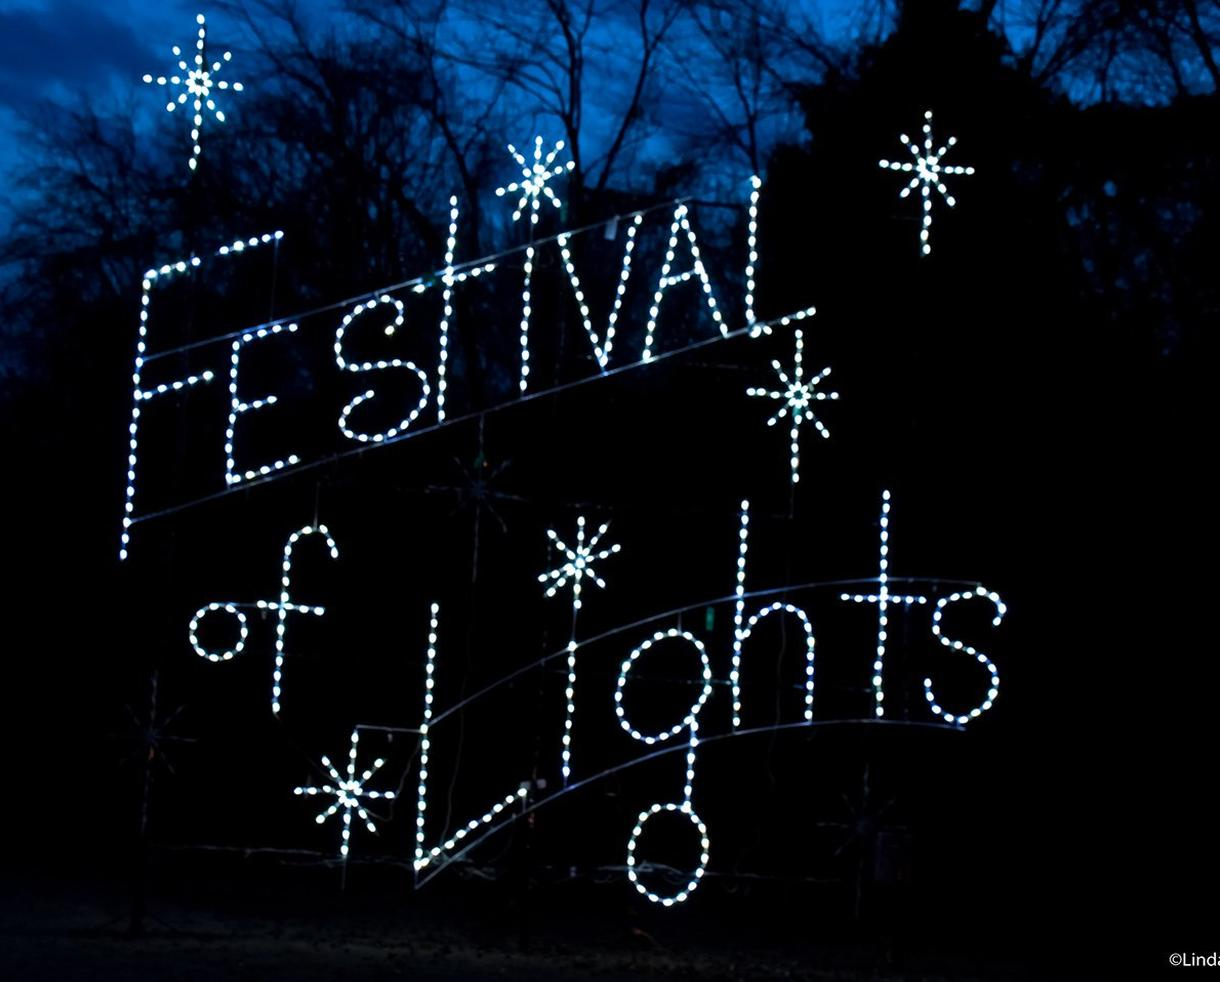 Bull Run Festival of Lights Weekday Admission for One Car